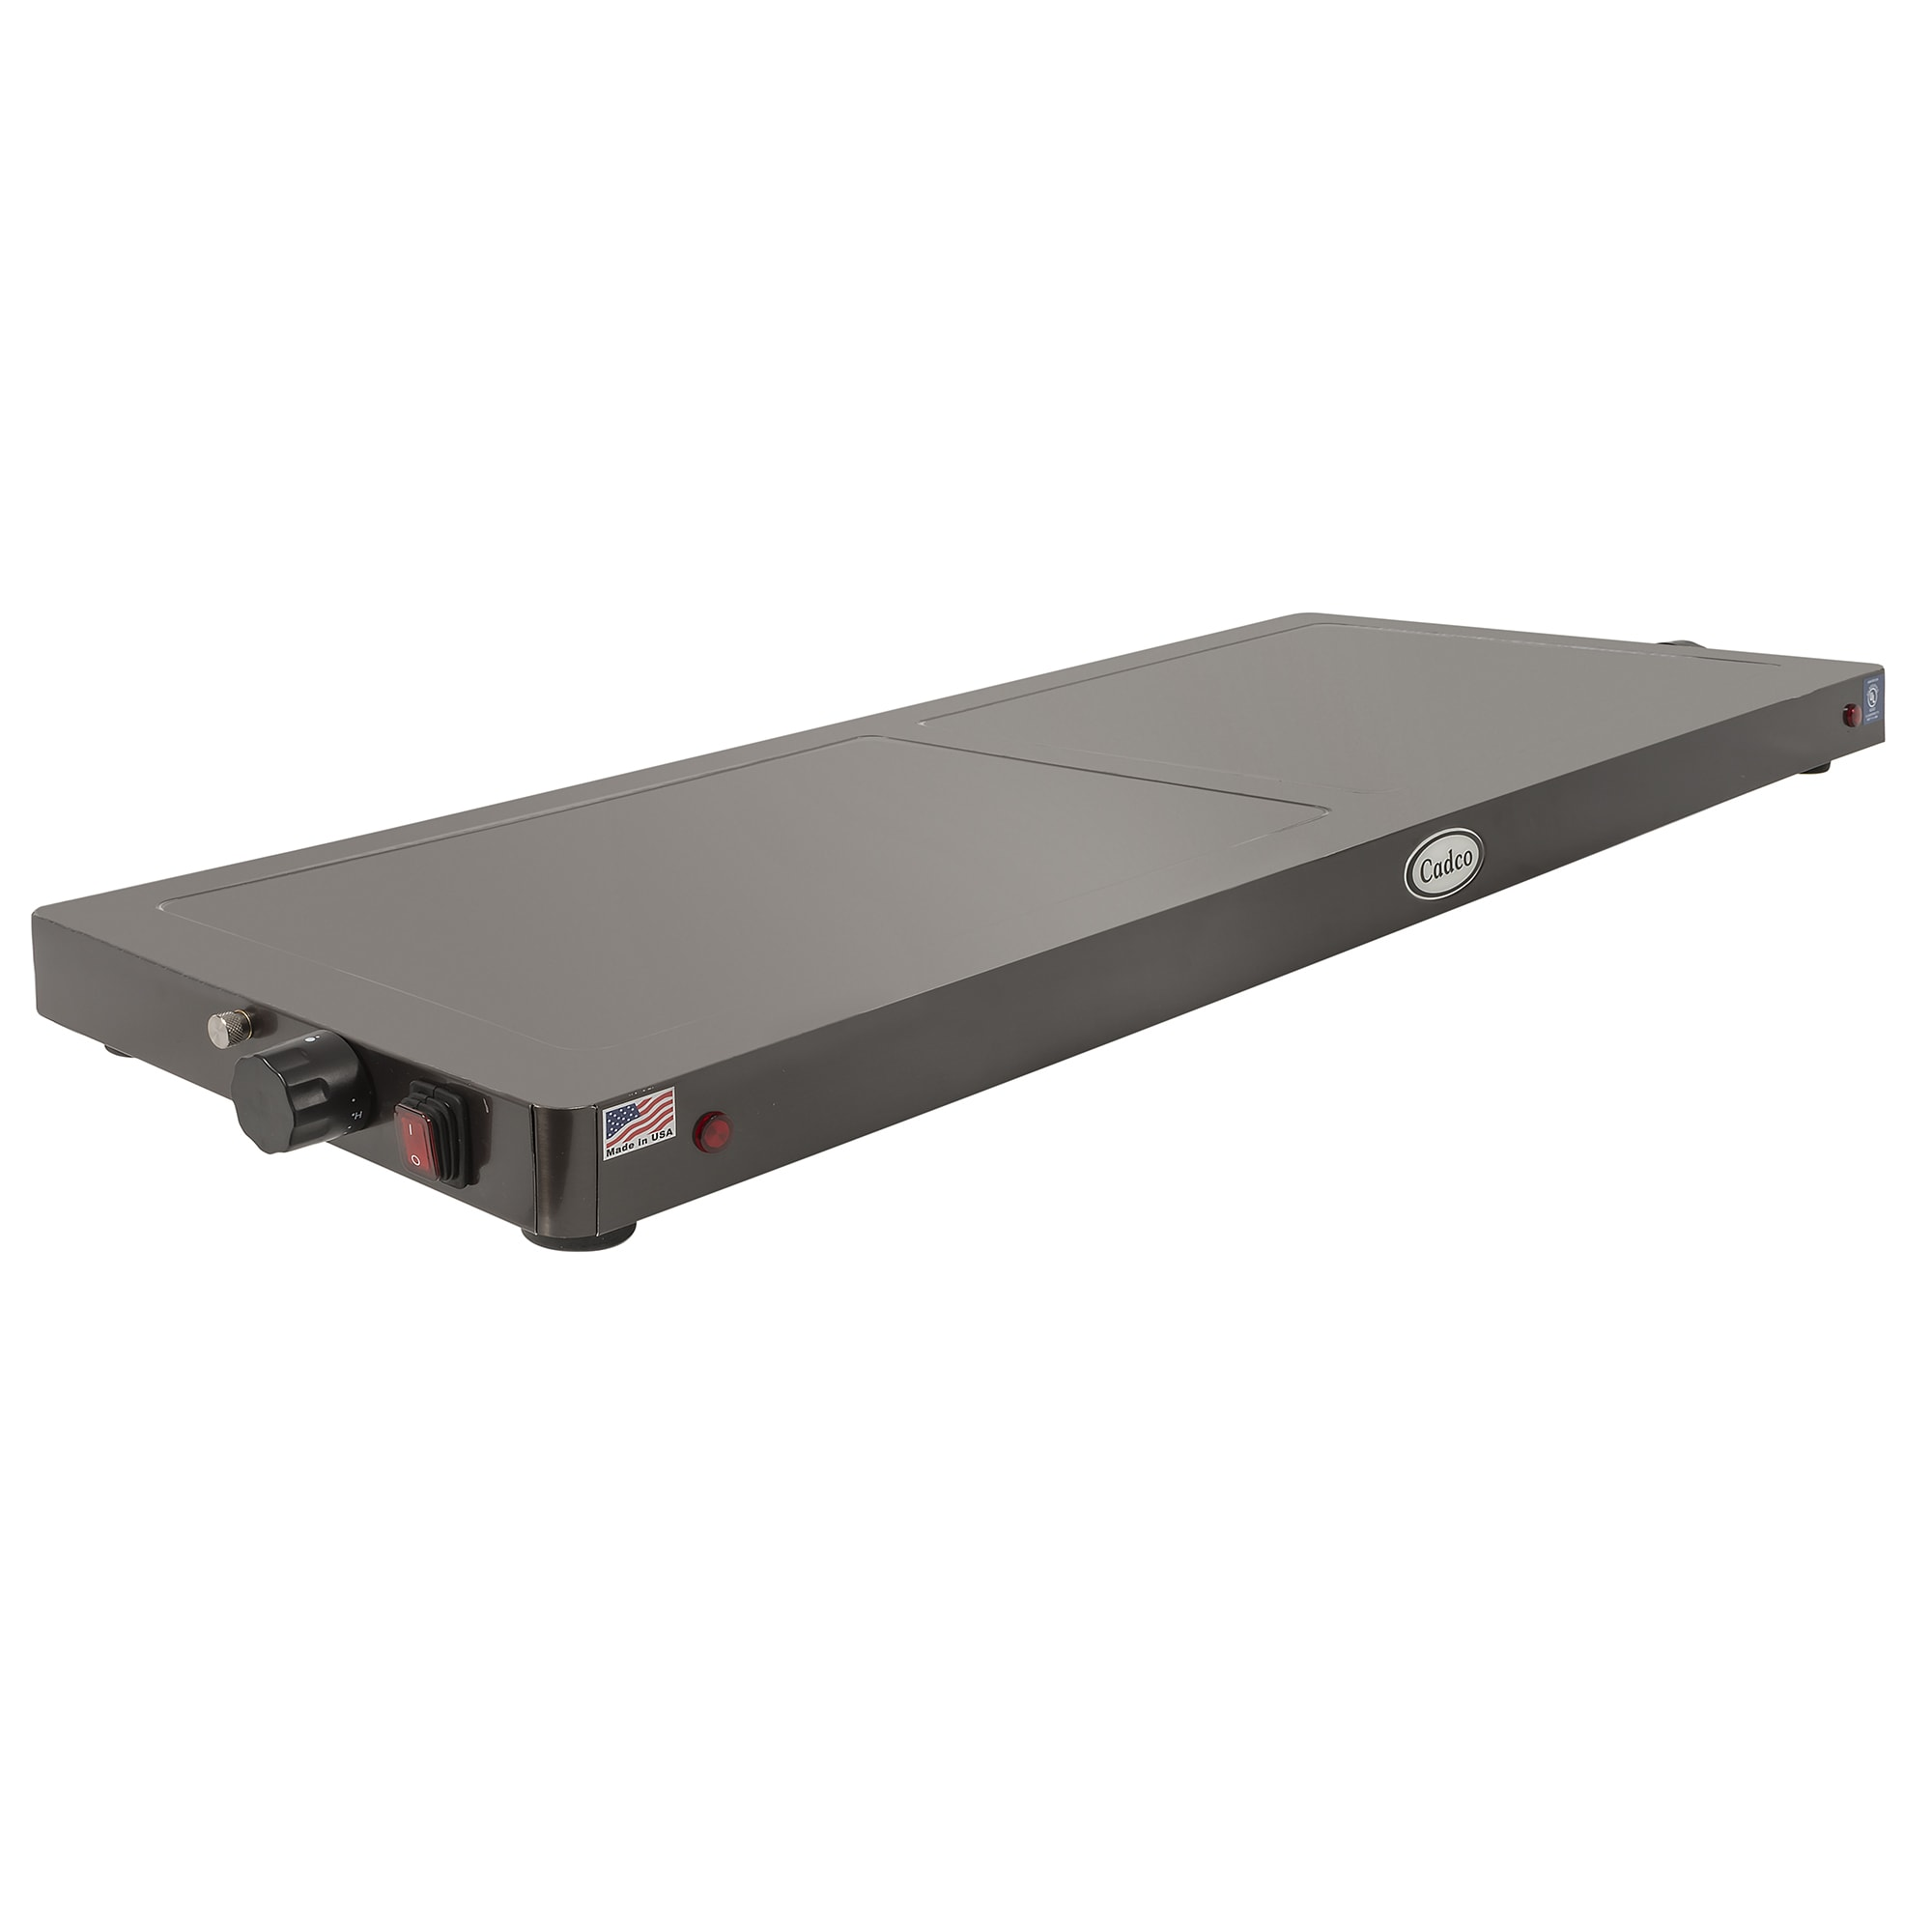 "Cadco WT-40-HD 45"" Heated Shelf w/ Adjustable Thermostat - Stainless, 120v"